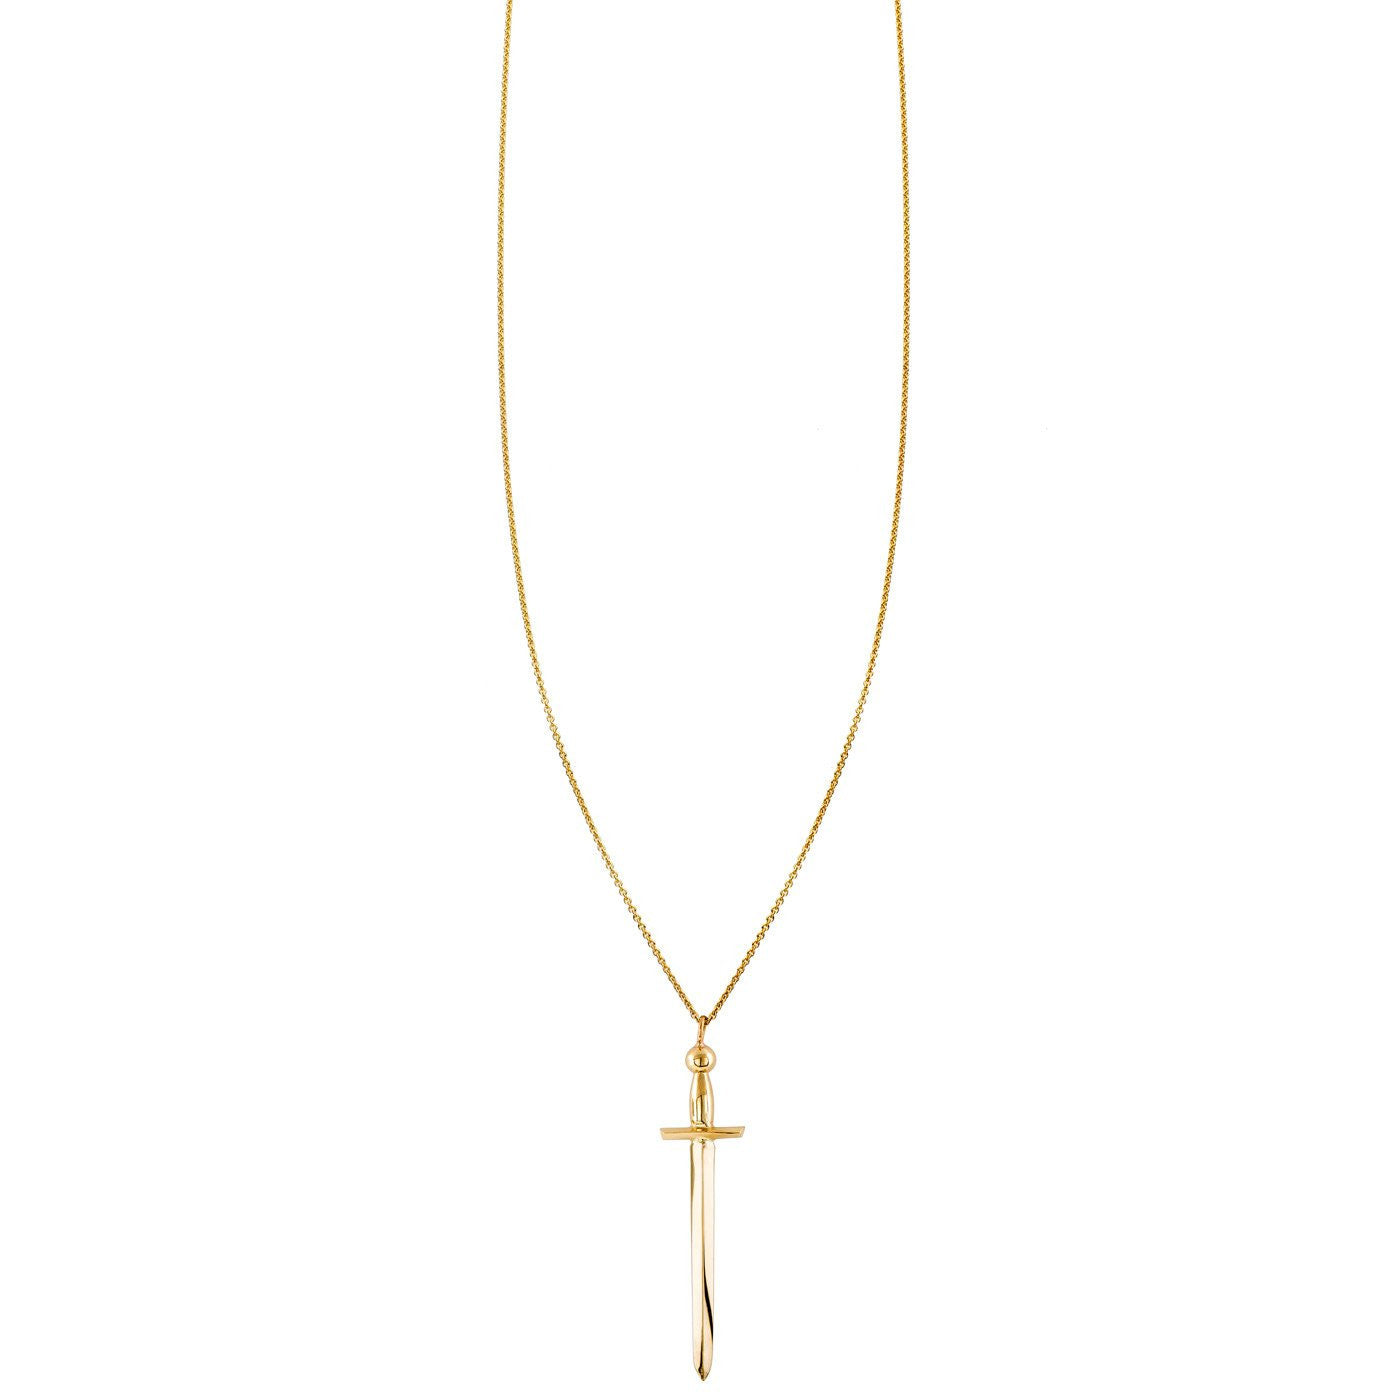 Image of Gold Sword Charm Necklace